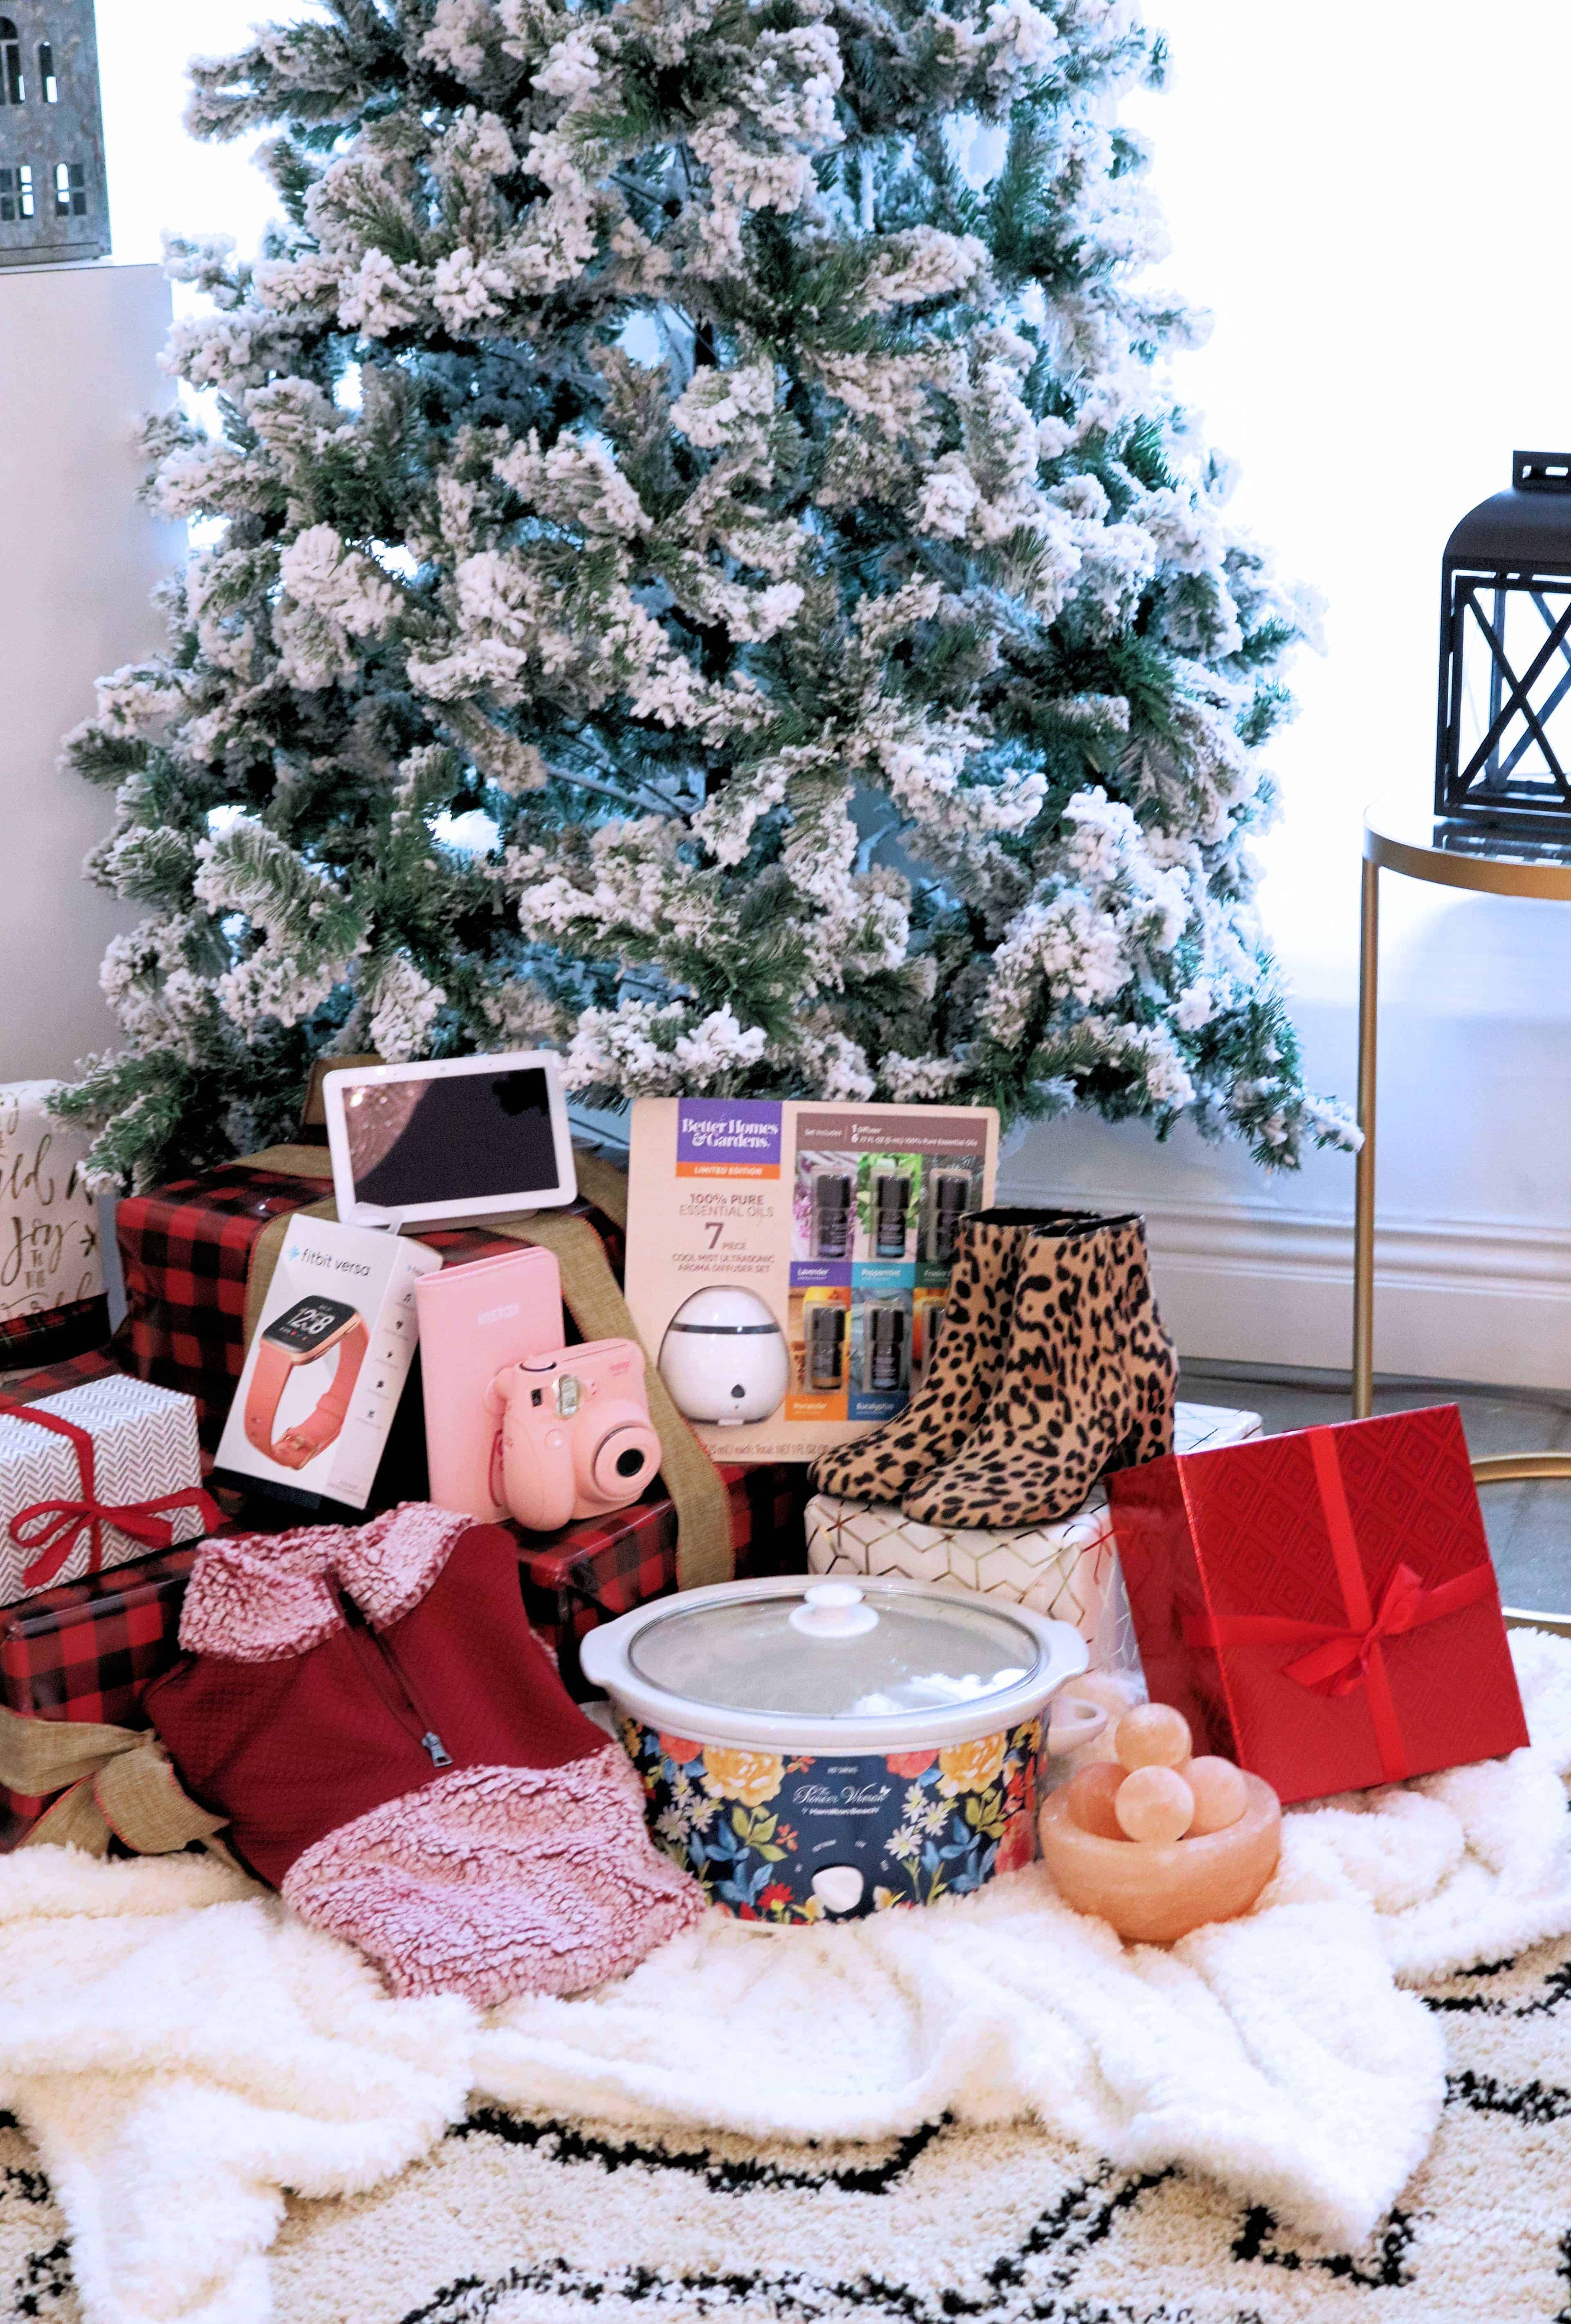 Looking for the perfect Christmas gifts for her this year? Check out my roundup of the Hottest Black Friday Gifts For Her at Walmart, with tons of pampering gifts she'll love. Even better, they're all at affordable prices! #sponsored #blackfriday #WalmartSKM #blackfriday2018 #lightupblackfriday #christmasgifts #giftsforher @Walmart